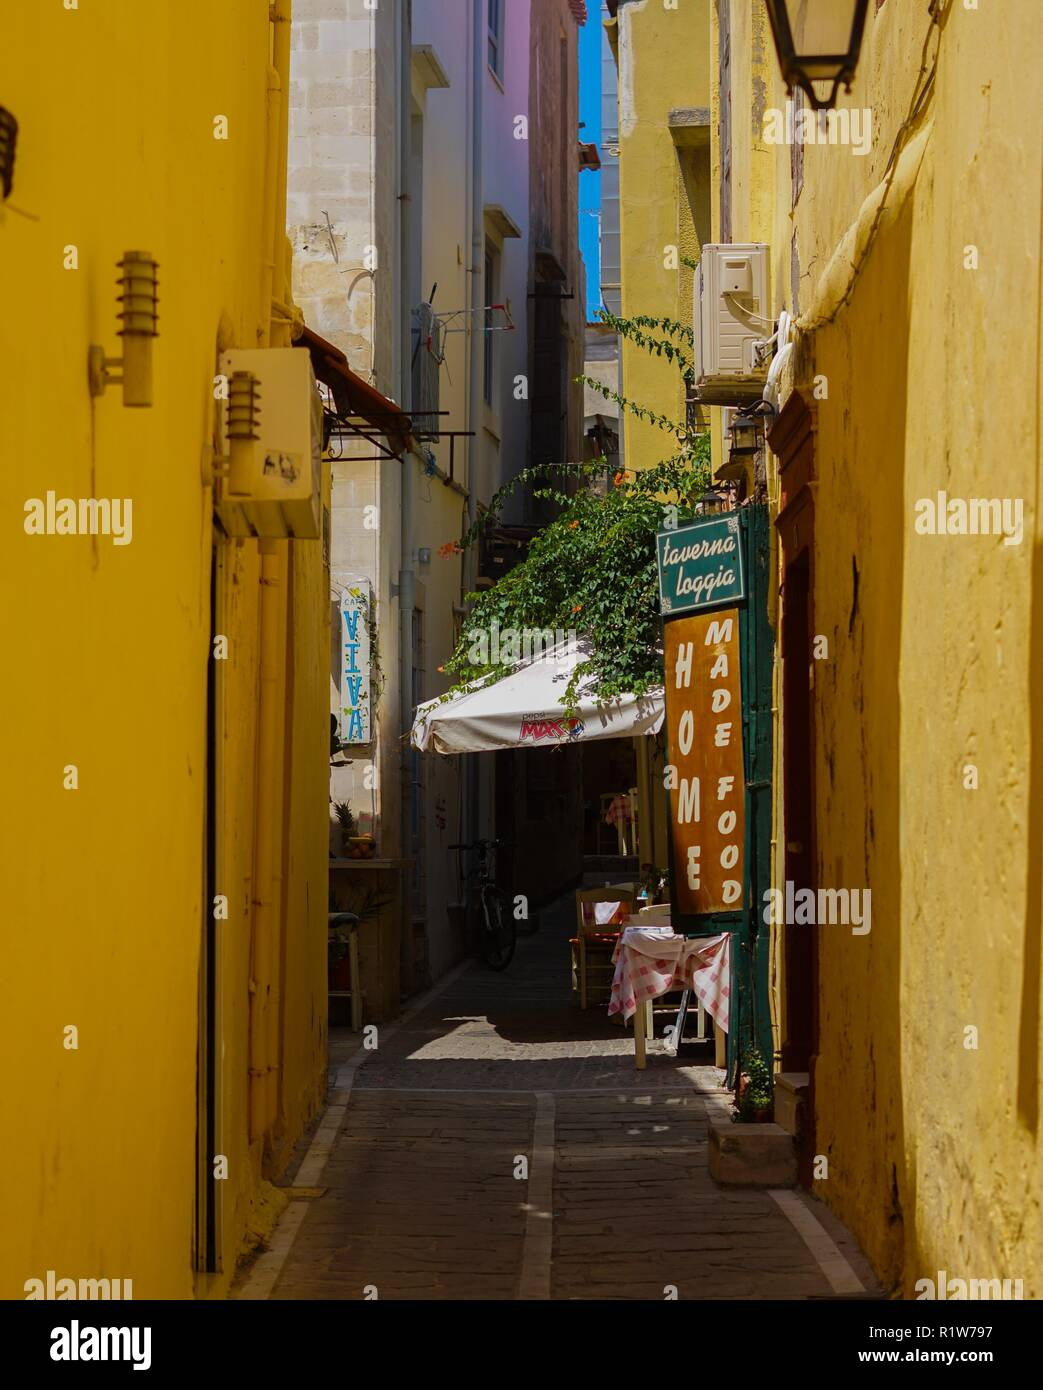 Cafe located on narrow street in old town Rethimno, Crete. - Stock Image